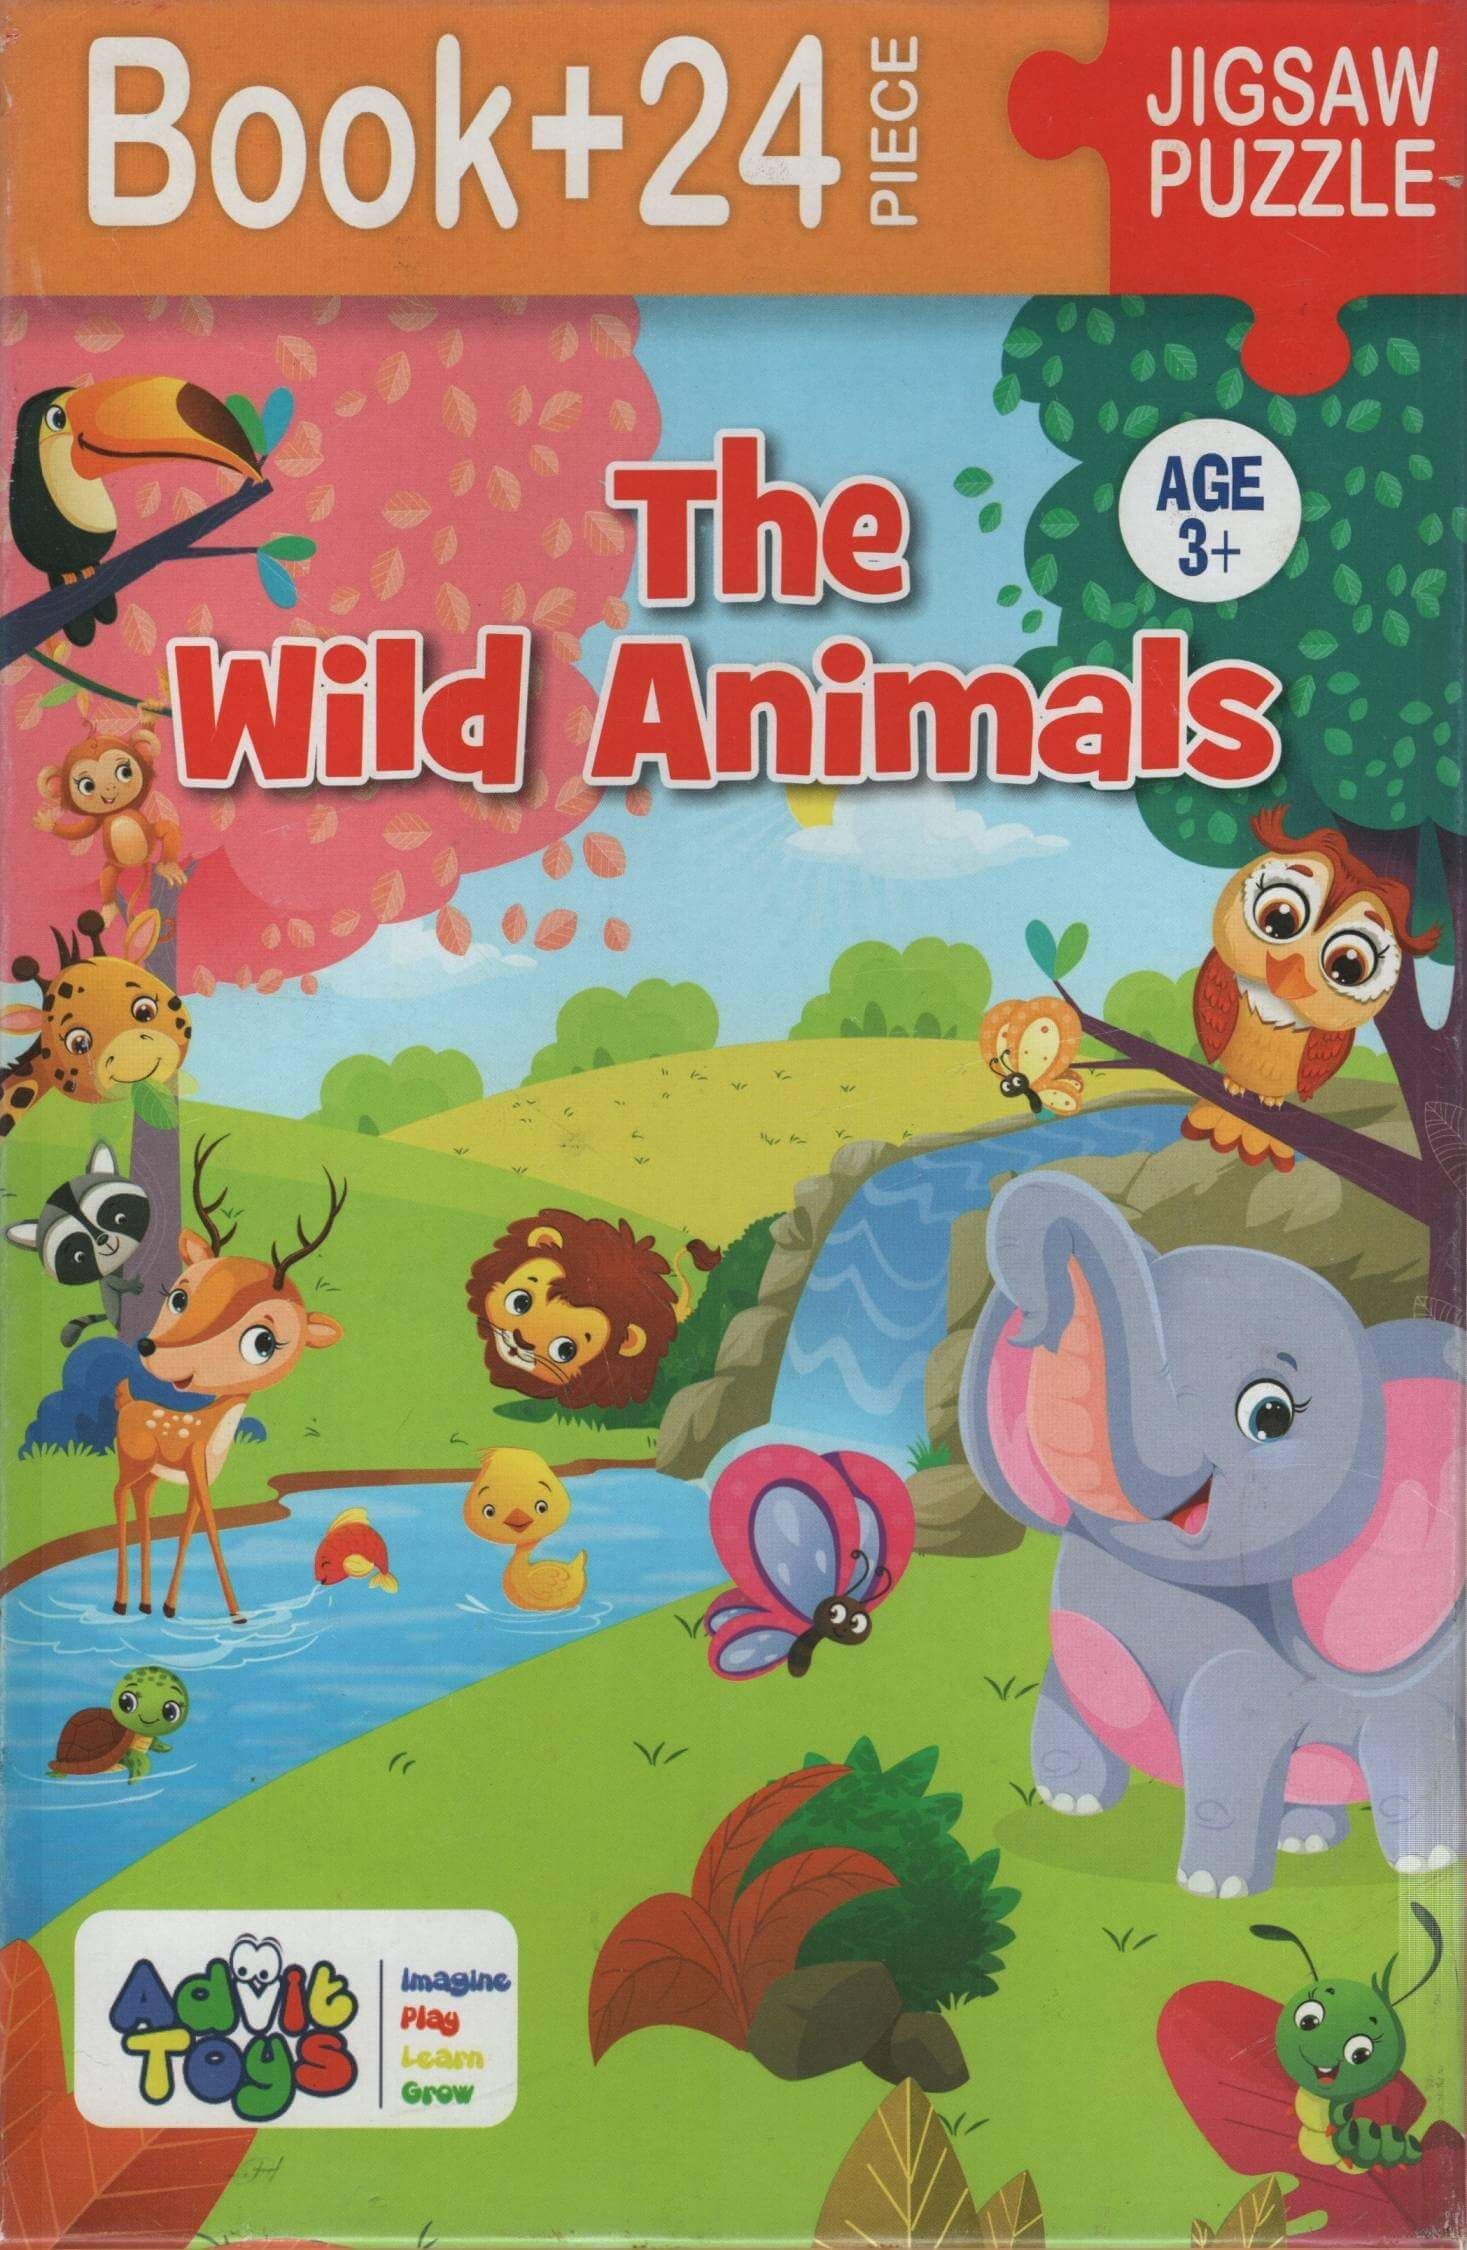 The Wild Animals - Jigsaw Puzzle (Book + 24 Piece - Age 3+)